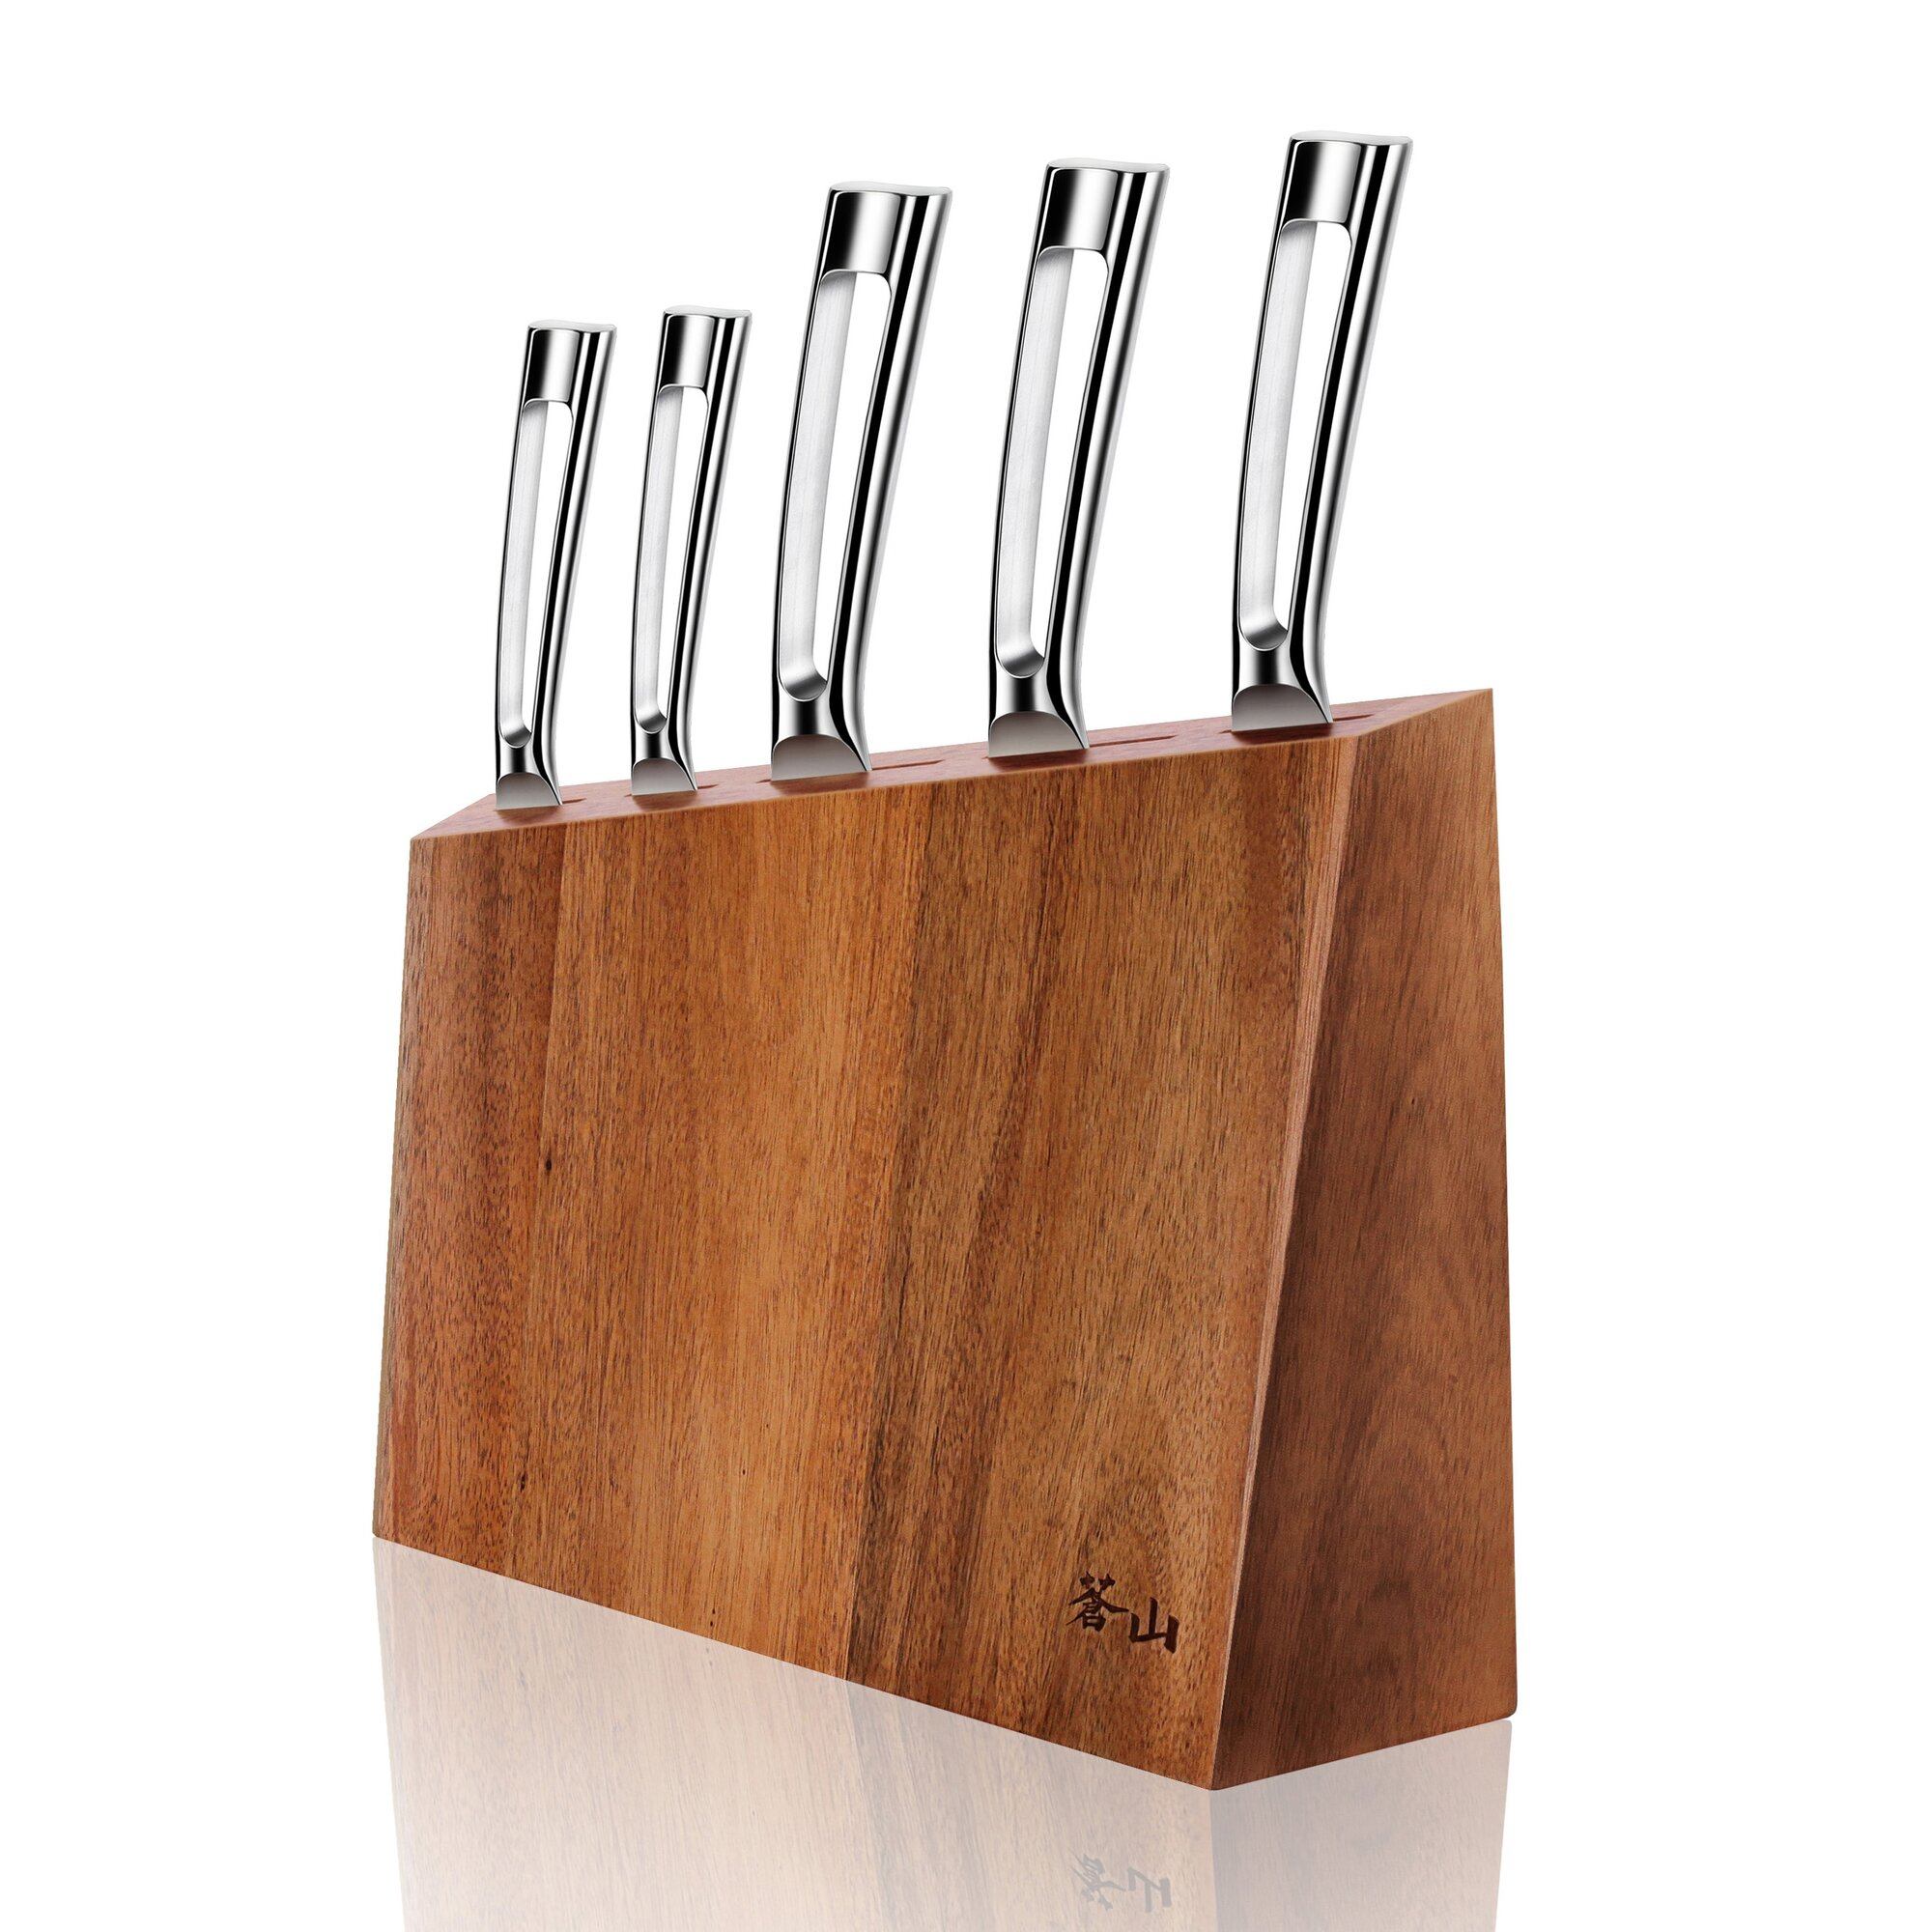 Shun Kanso Knife Block Set 6 Piece Chef S Corner